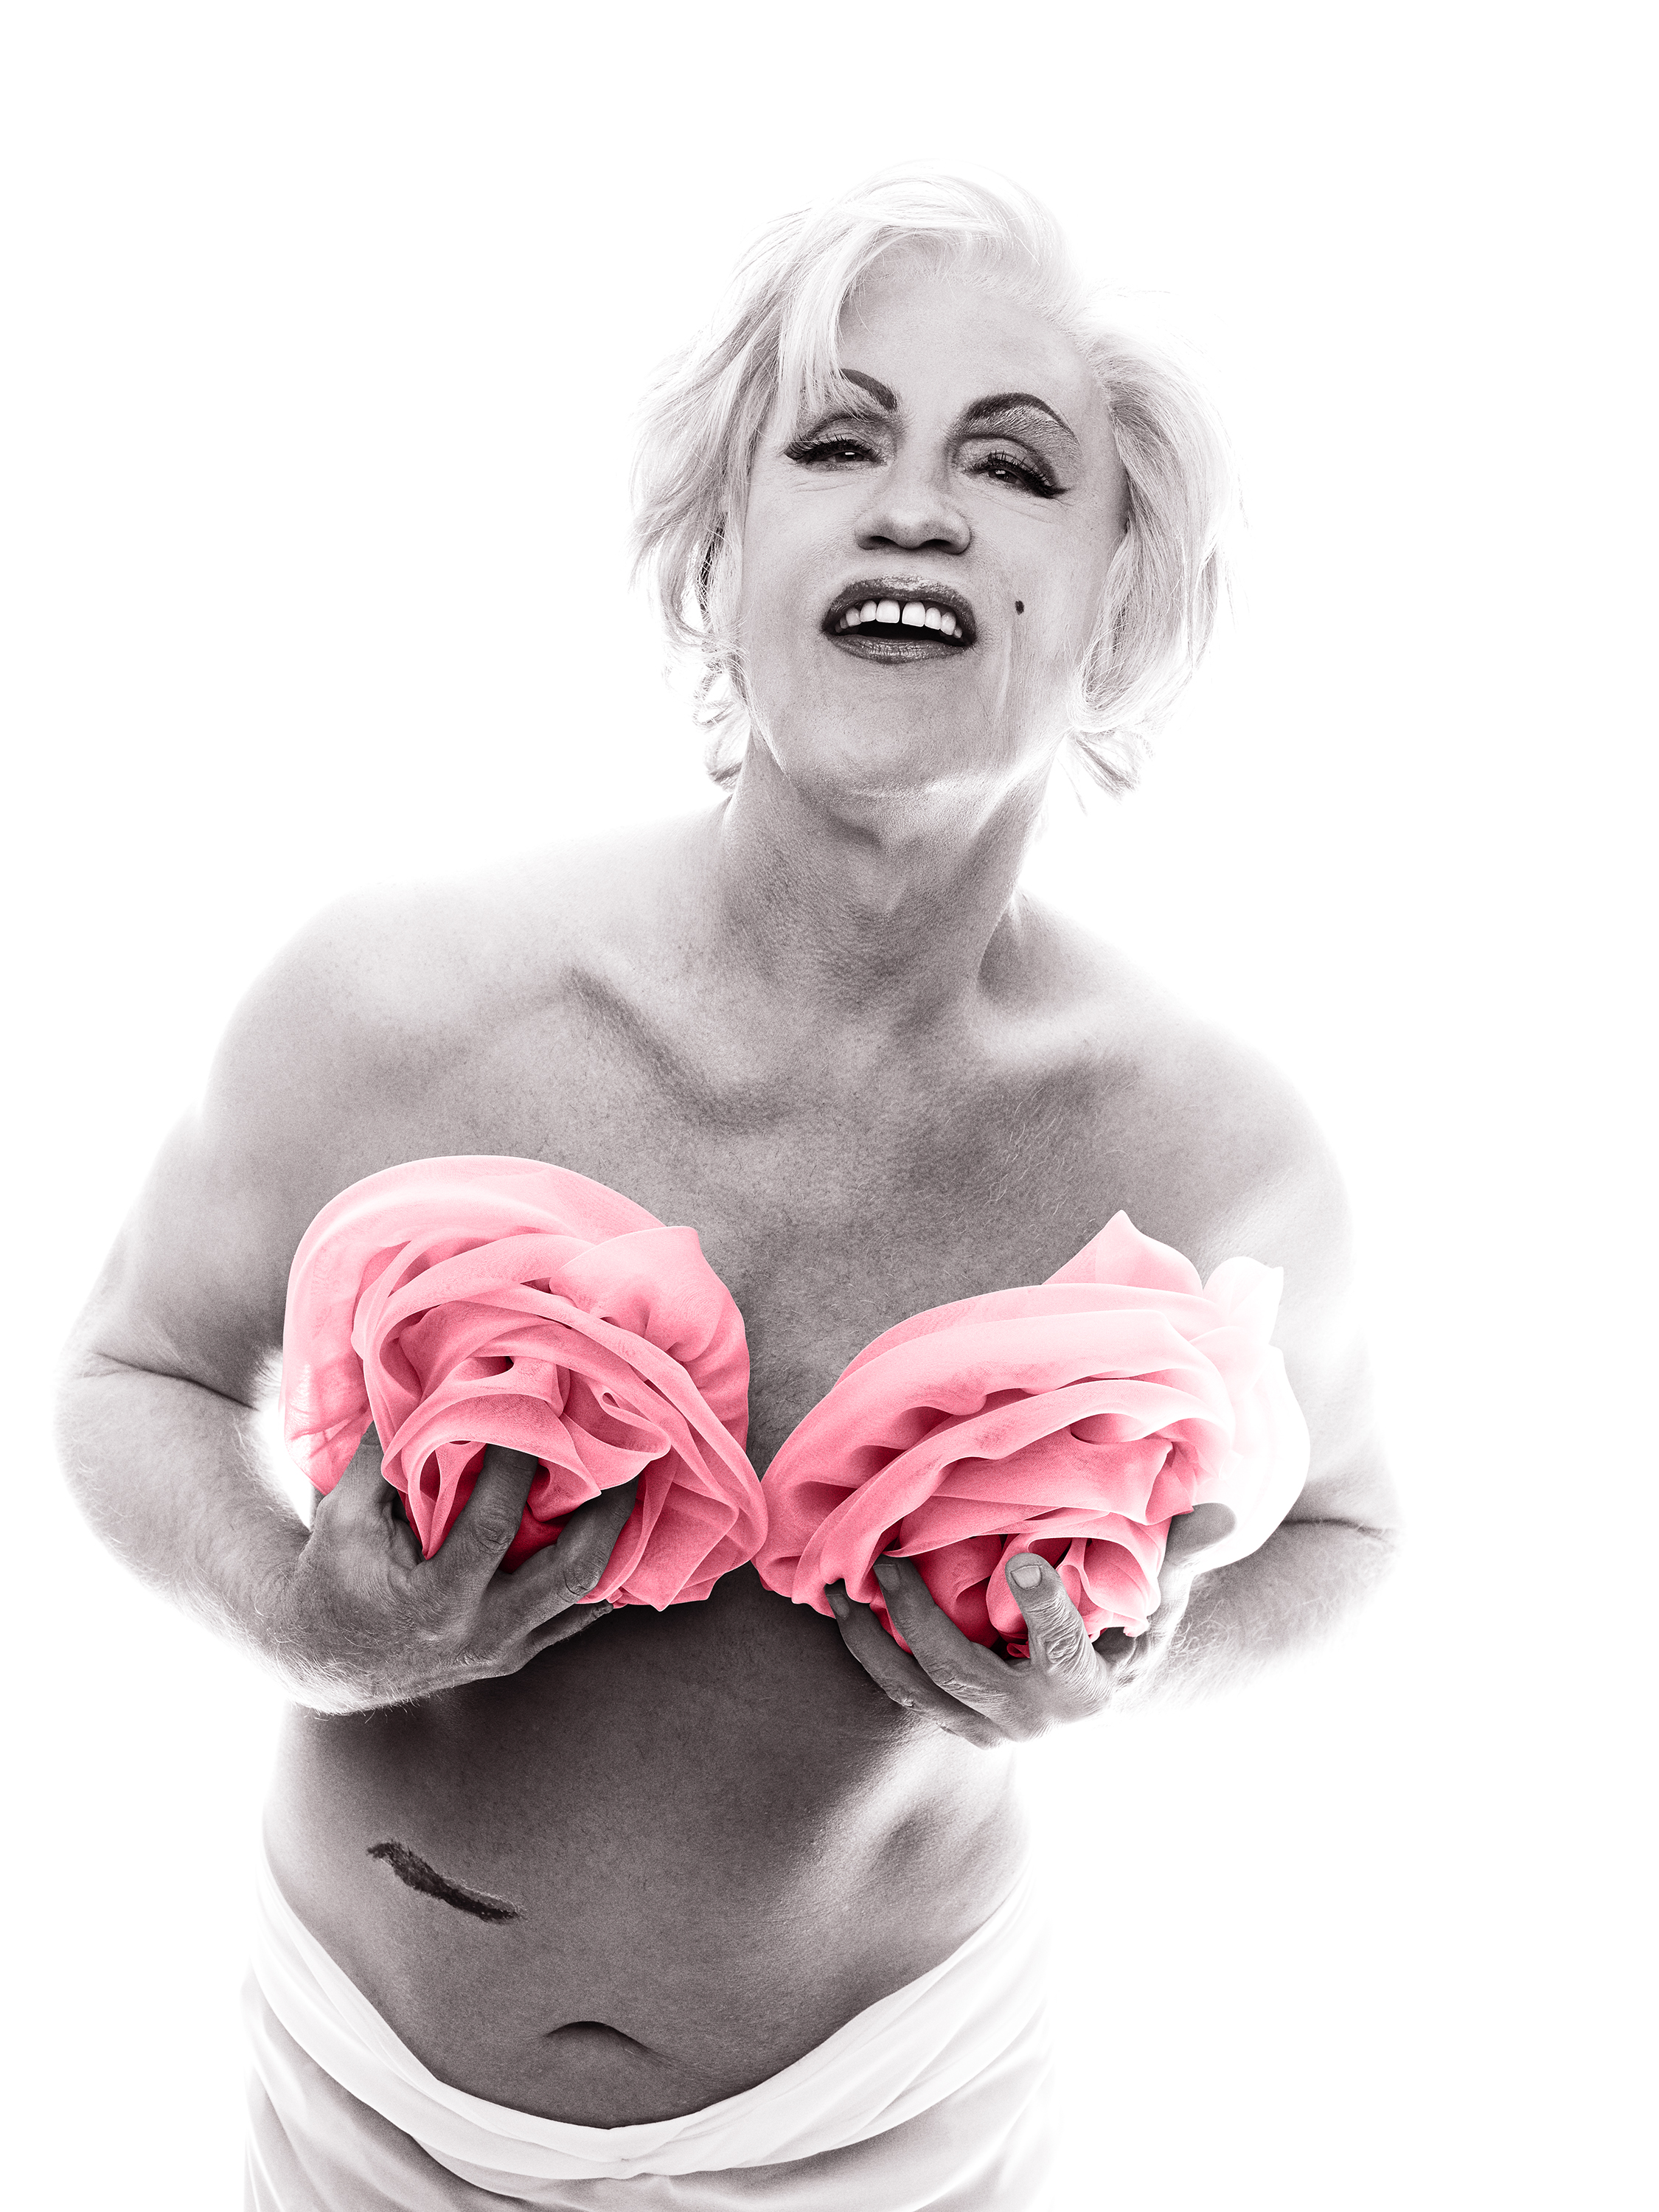 Bert Stern / Marilyn in Pink Roses (from The Last Session) (1962), 2014